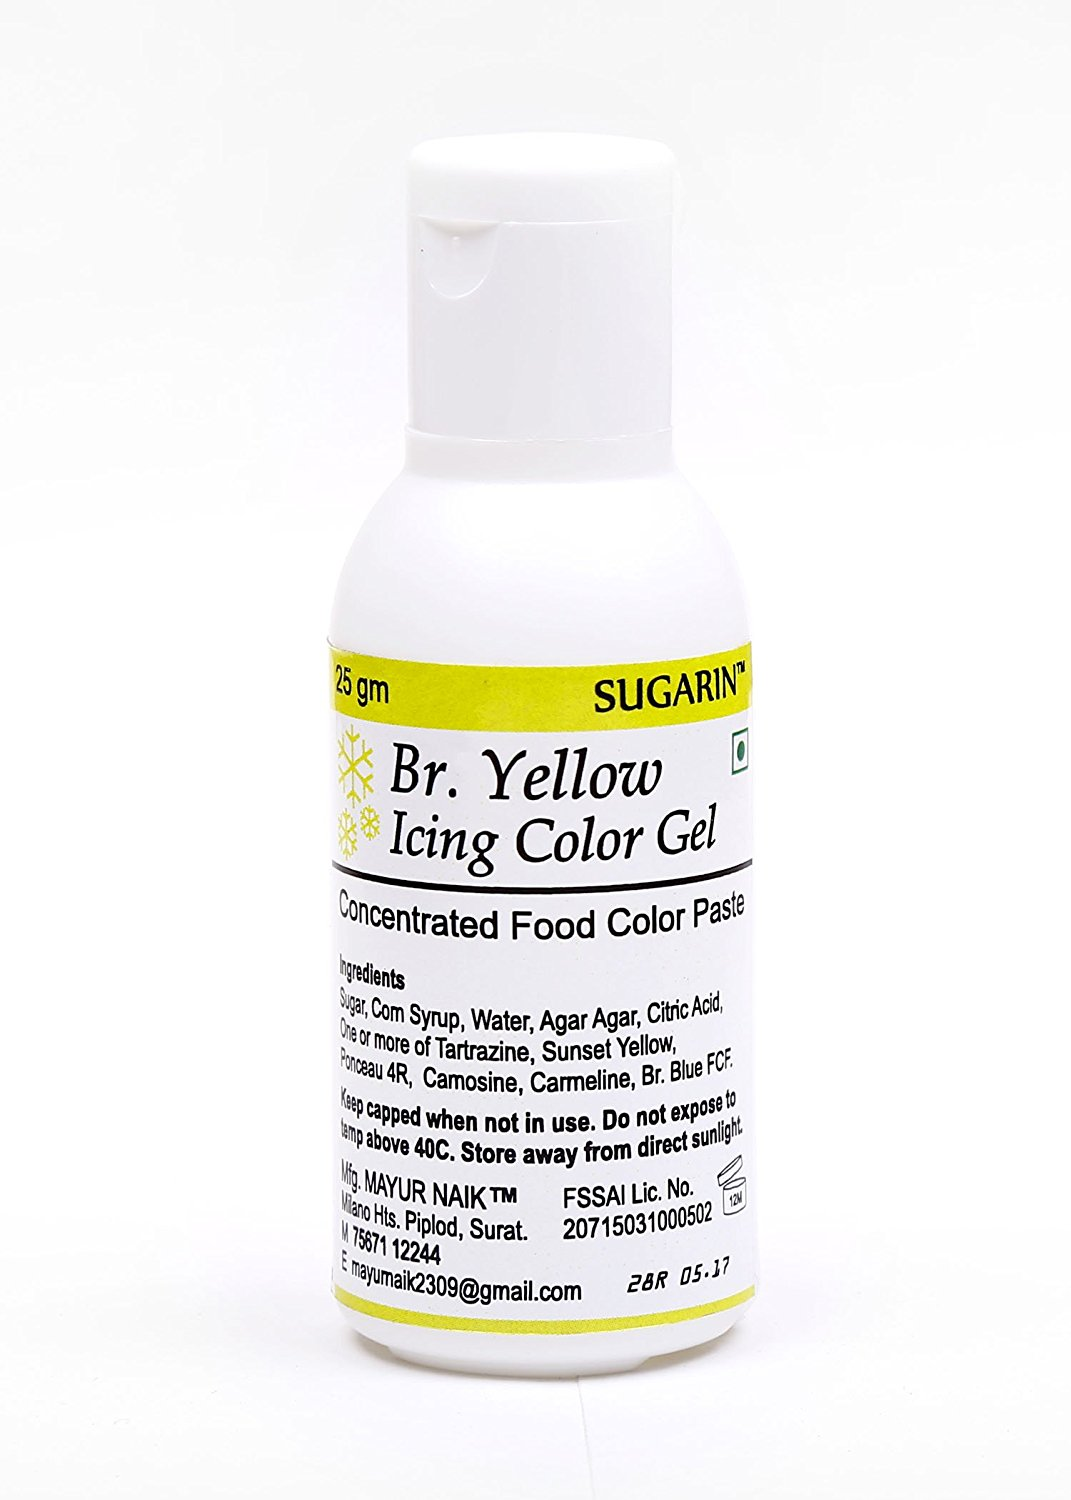 31685 Sugarin Icing Color Gel for Fondant, Brilliant Yellow, 25